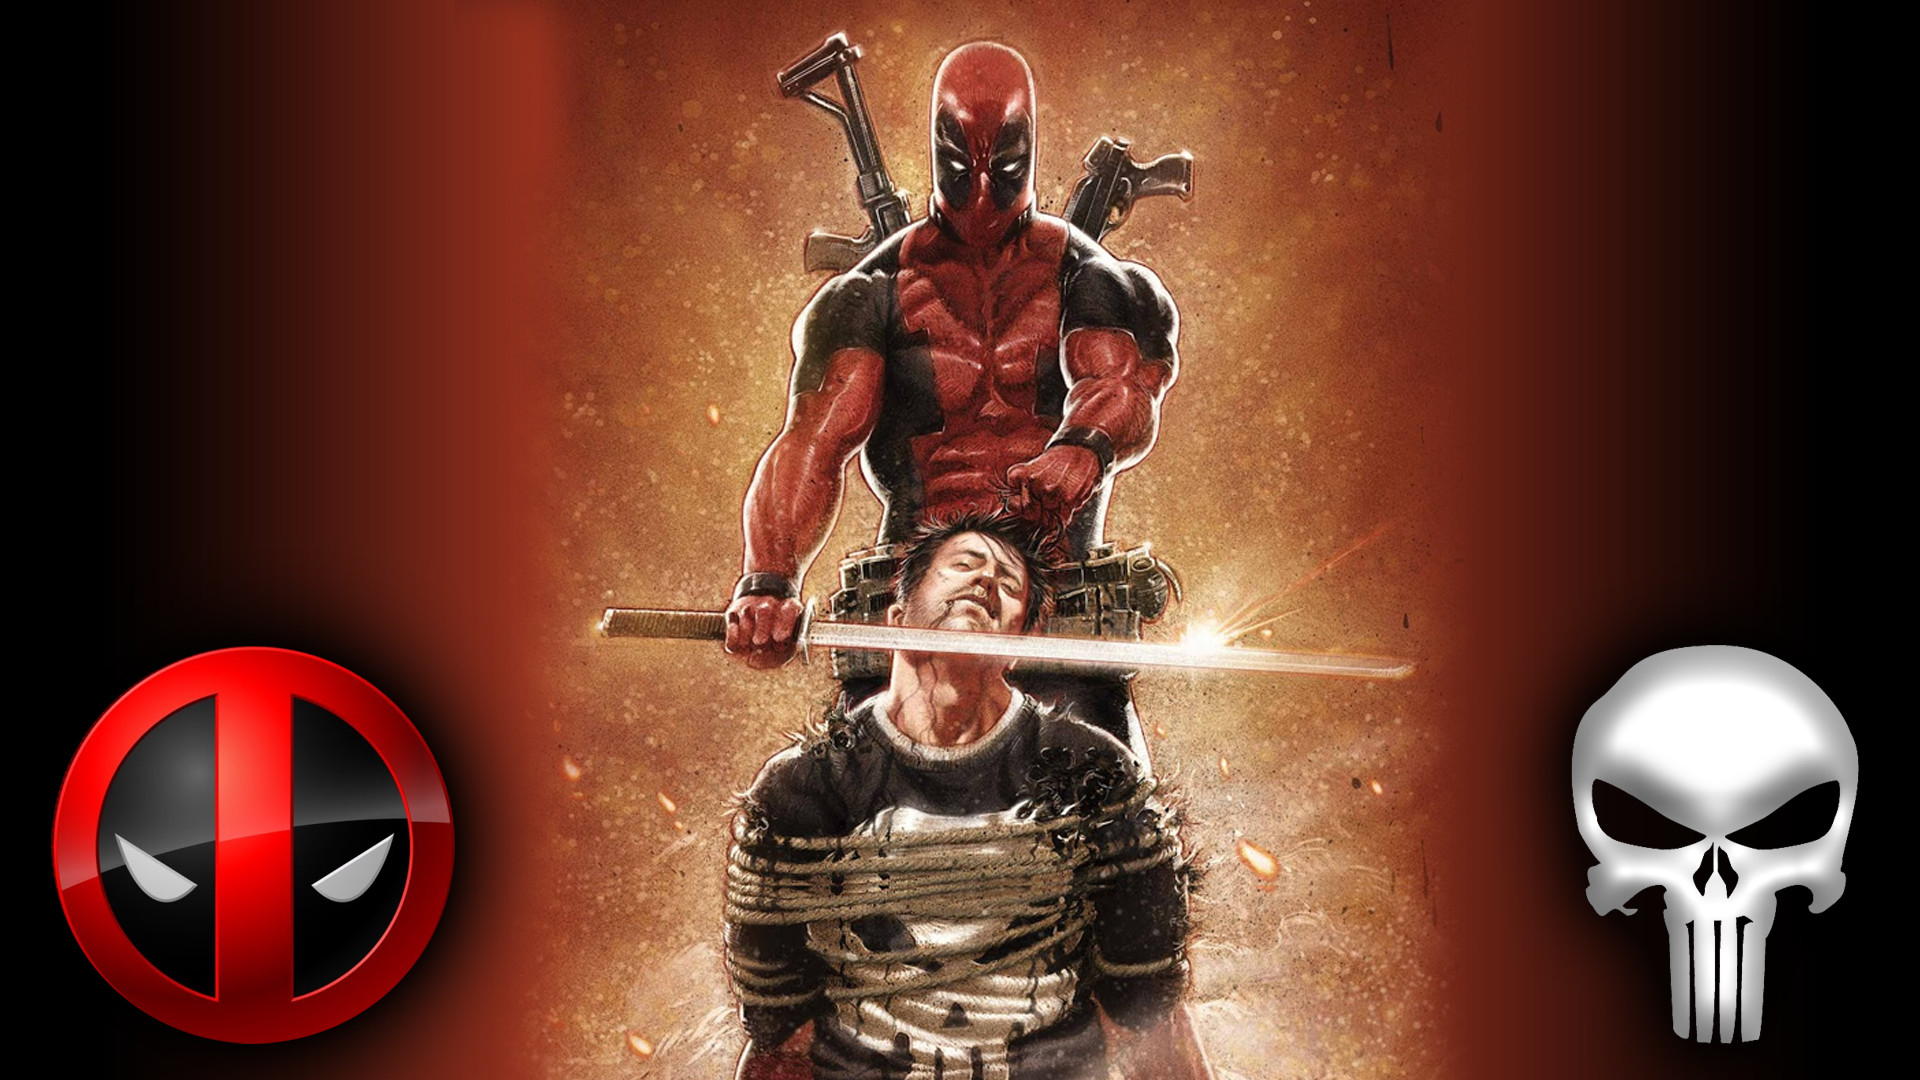 1920x1080 Deadpool Punisher wallpaper by Badonk Deadpool Punisher wallpaper by Badonk